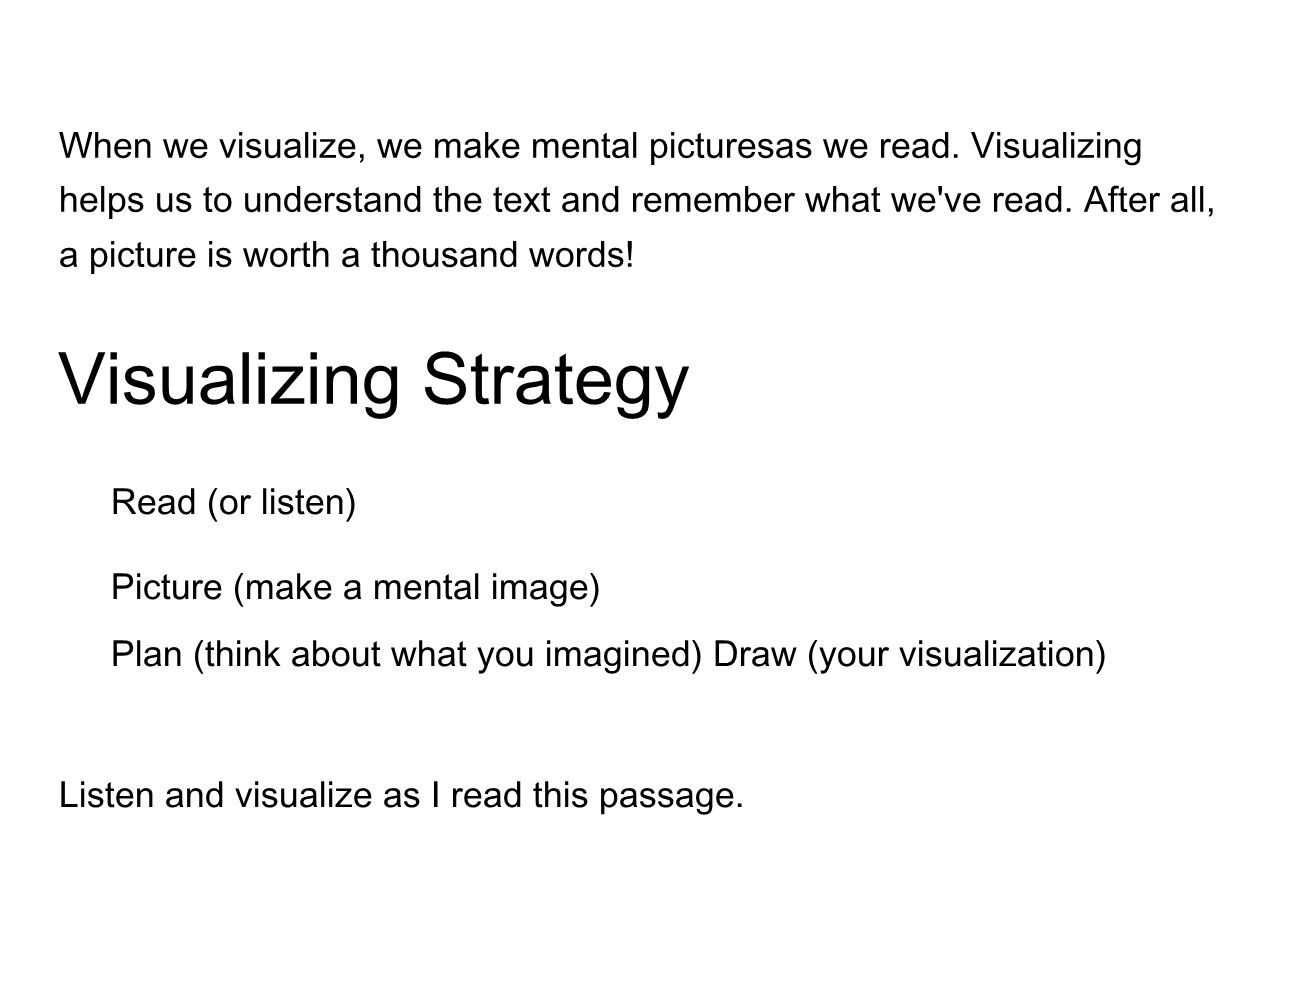 When we visualize, we make mental picturesas we read